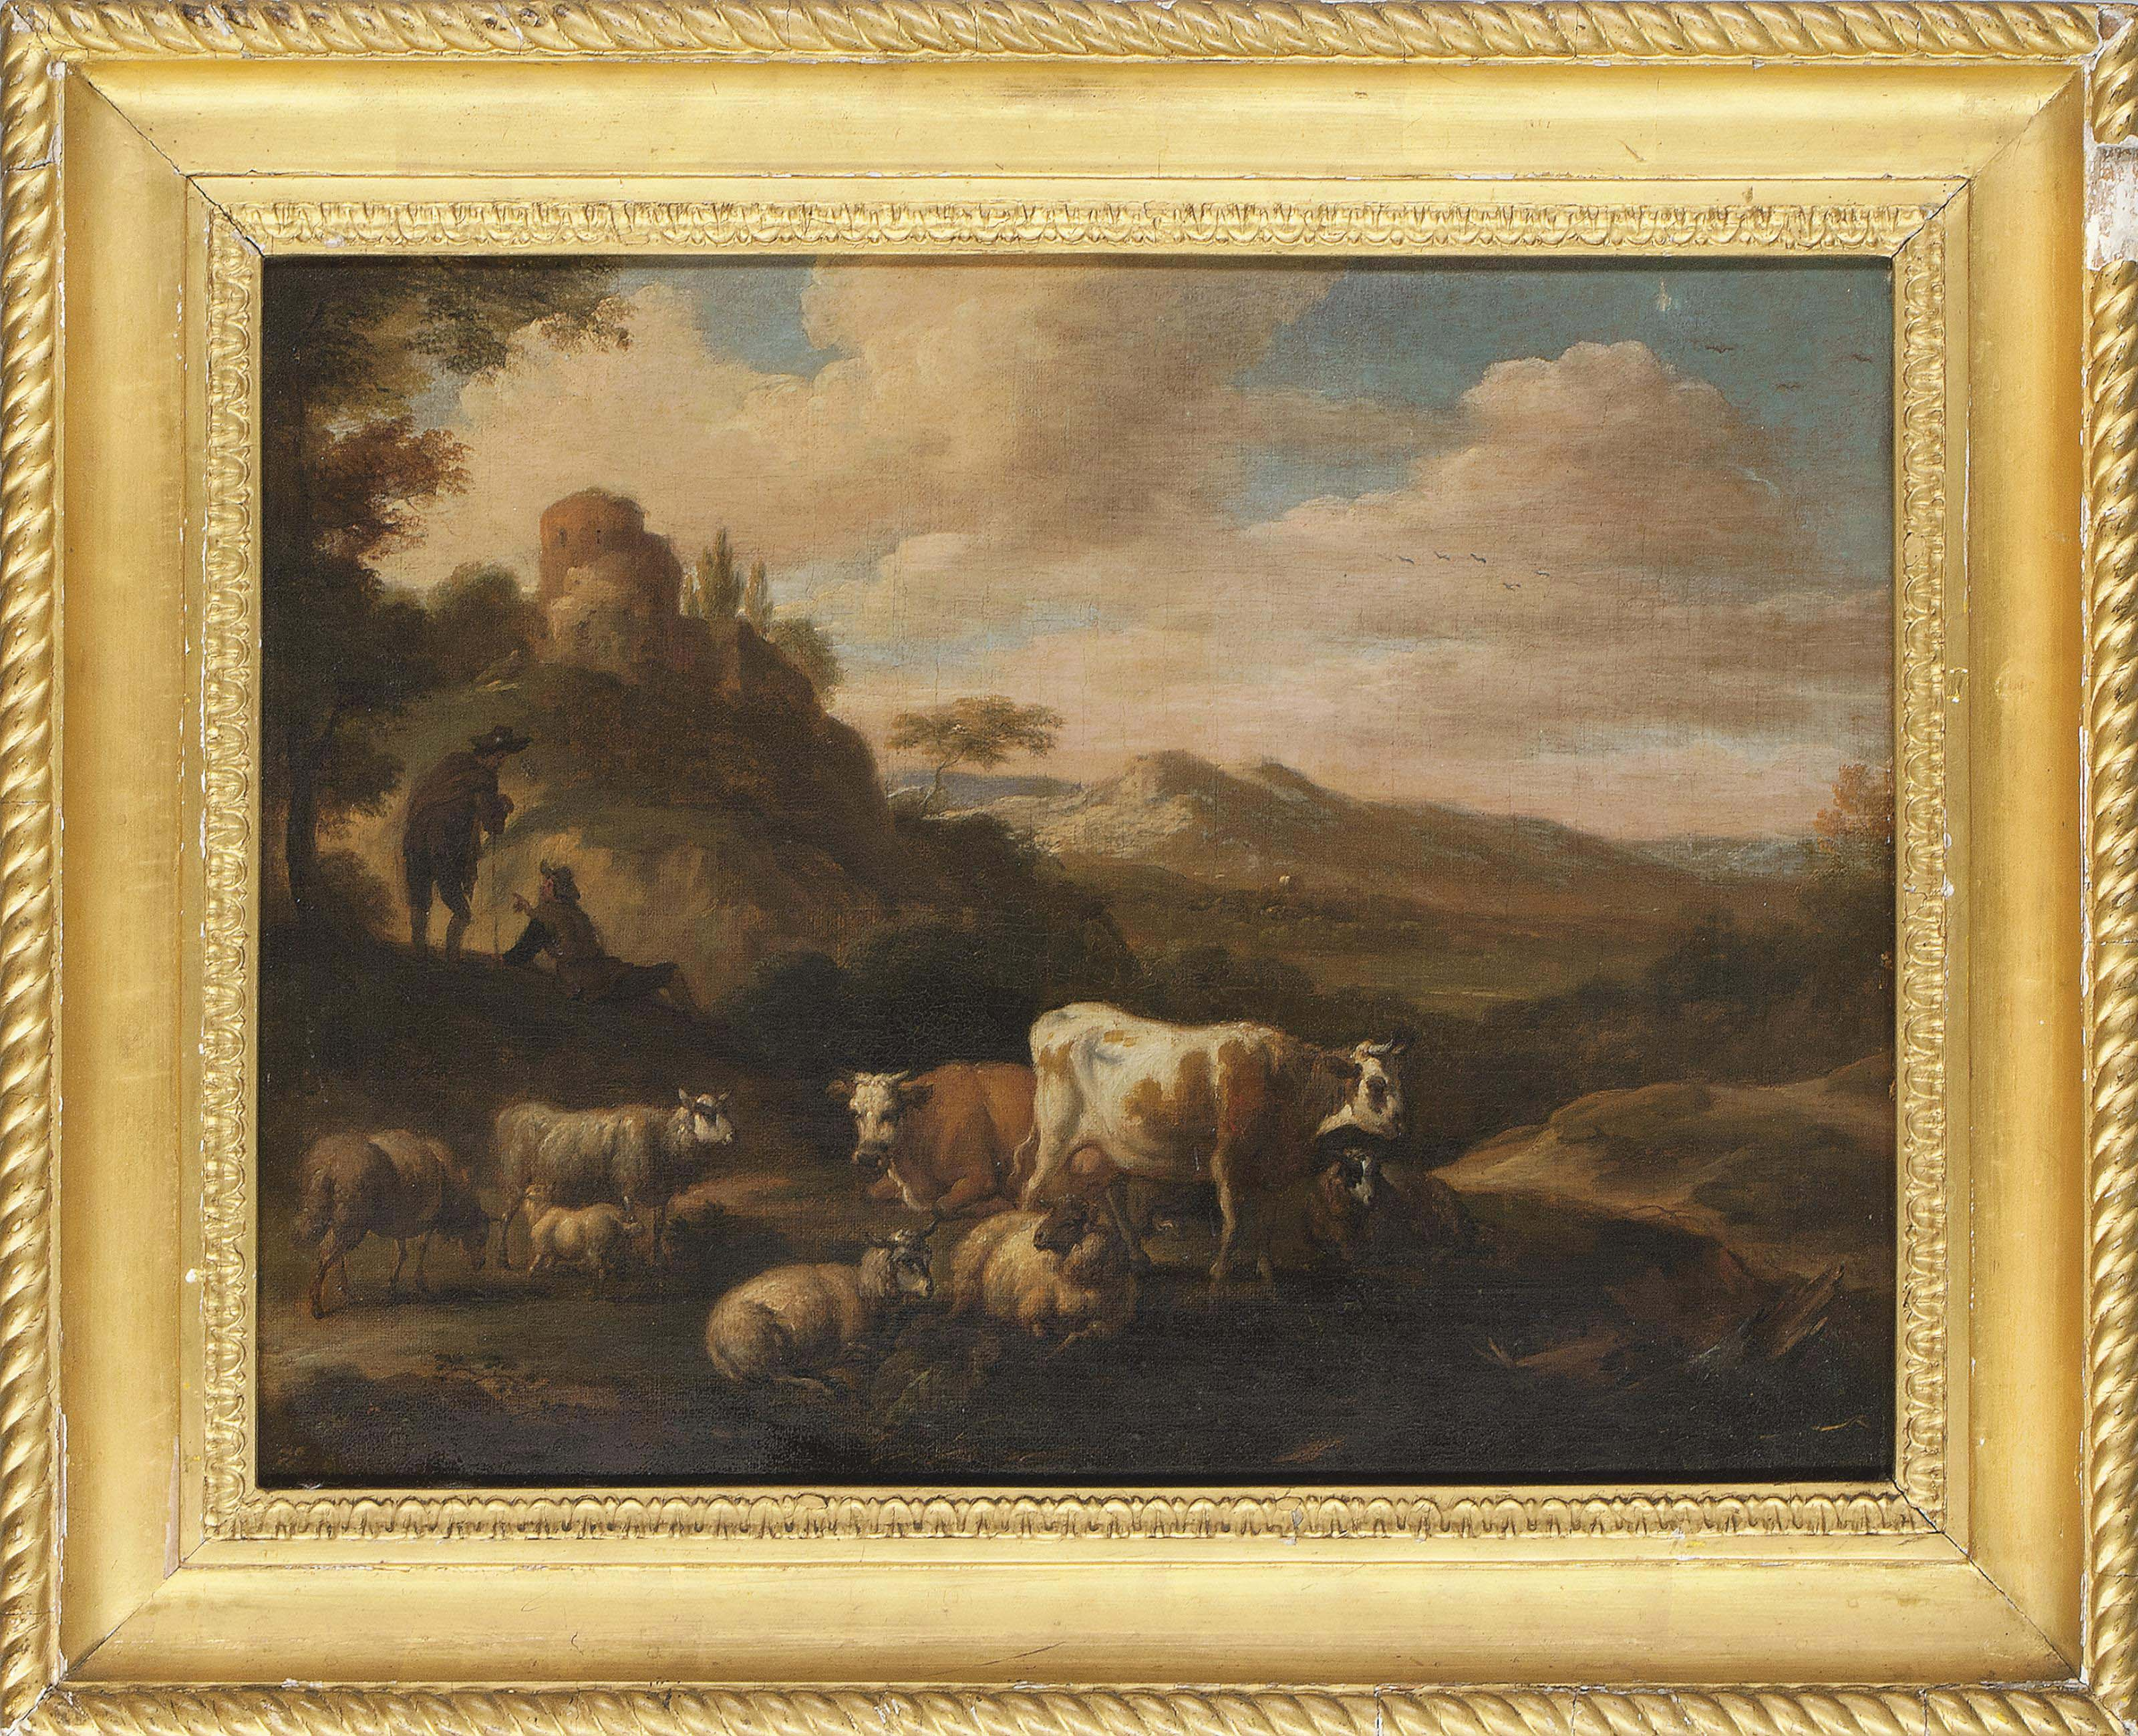 An Italianate landscape with cattle and shepherds